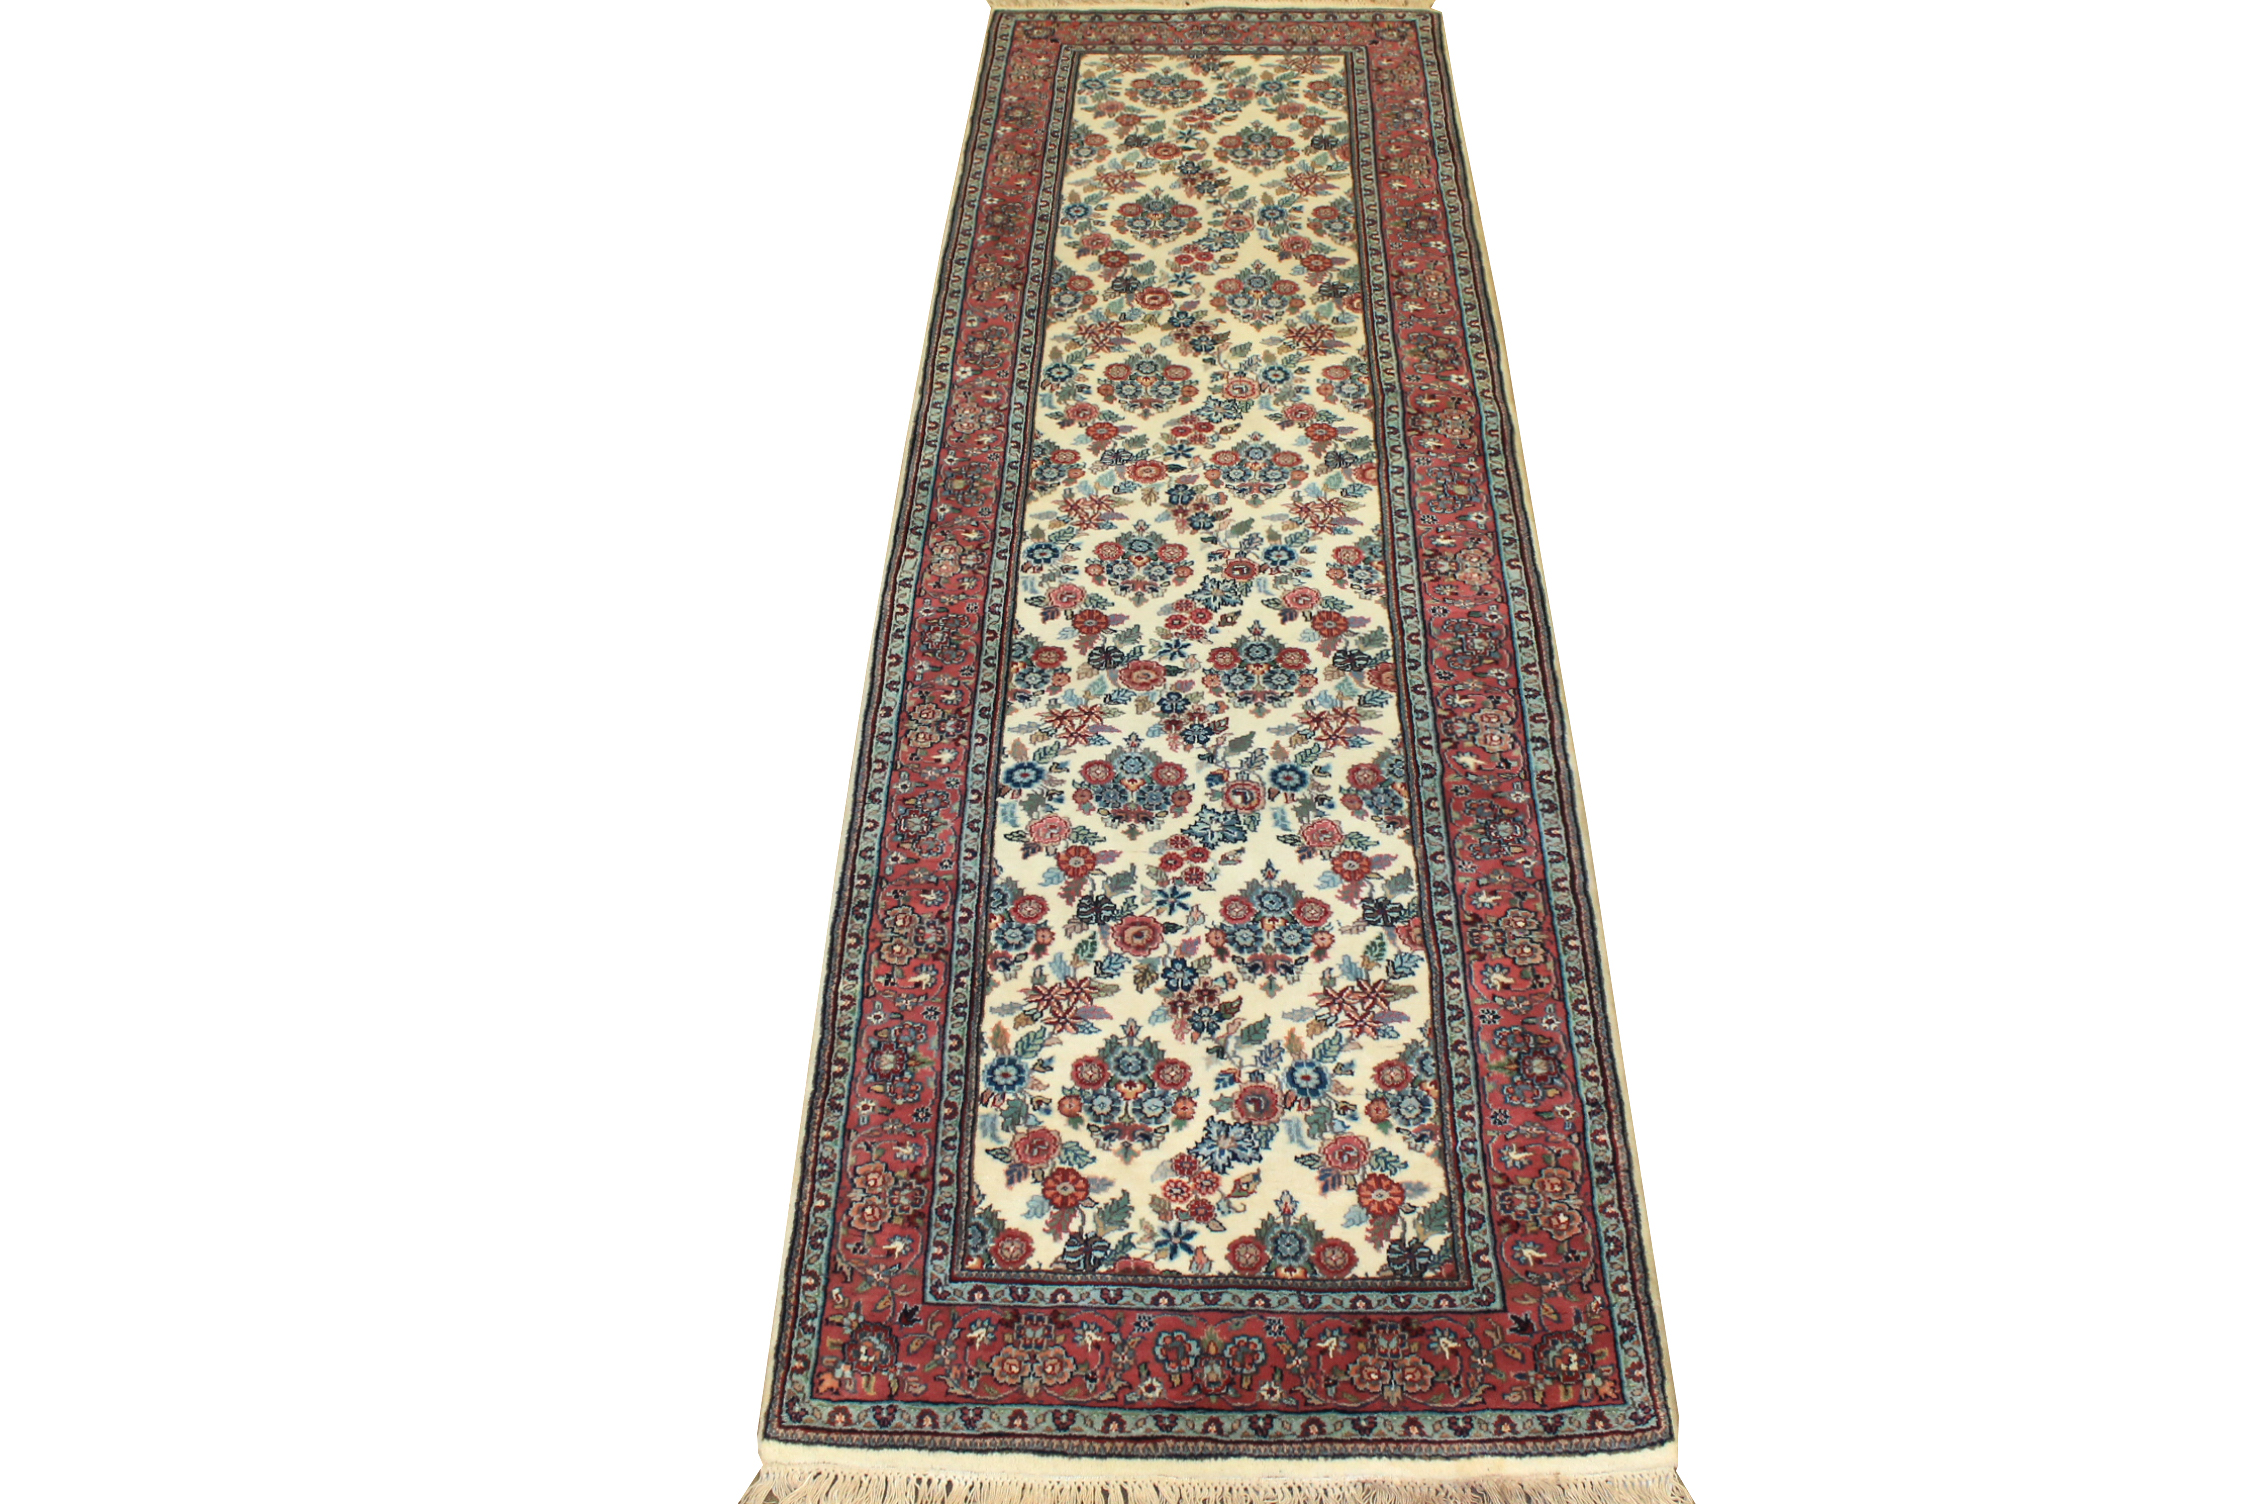 10 ft. Runner Traditional Hand Knotted Wool Area Rug - MR1037